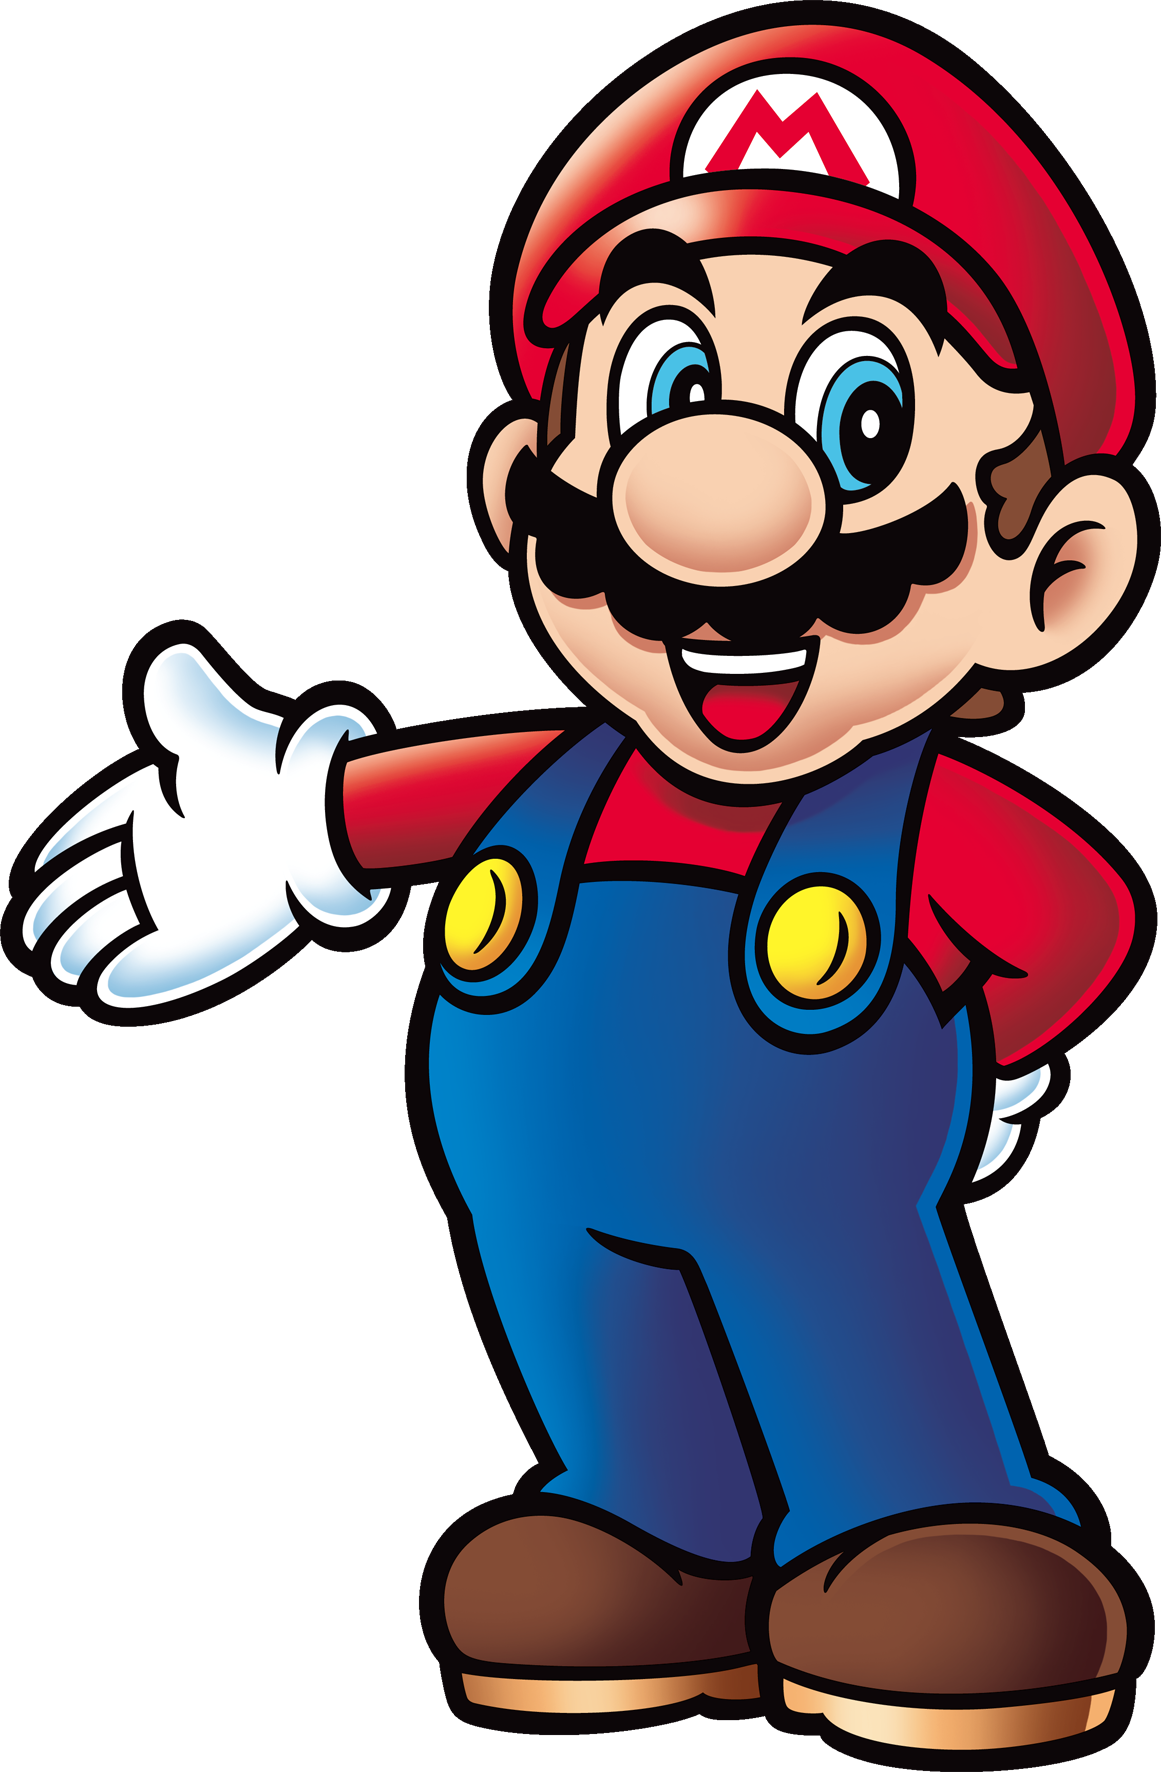 Super Mario Legends Await Fantendo Nintendo Fanon Wiki Fandom Powered By Wikia